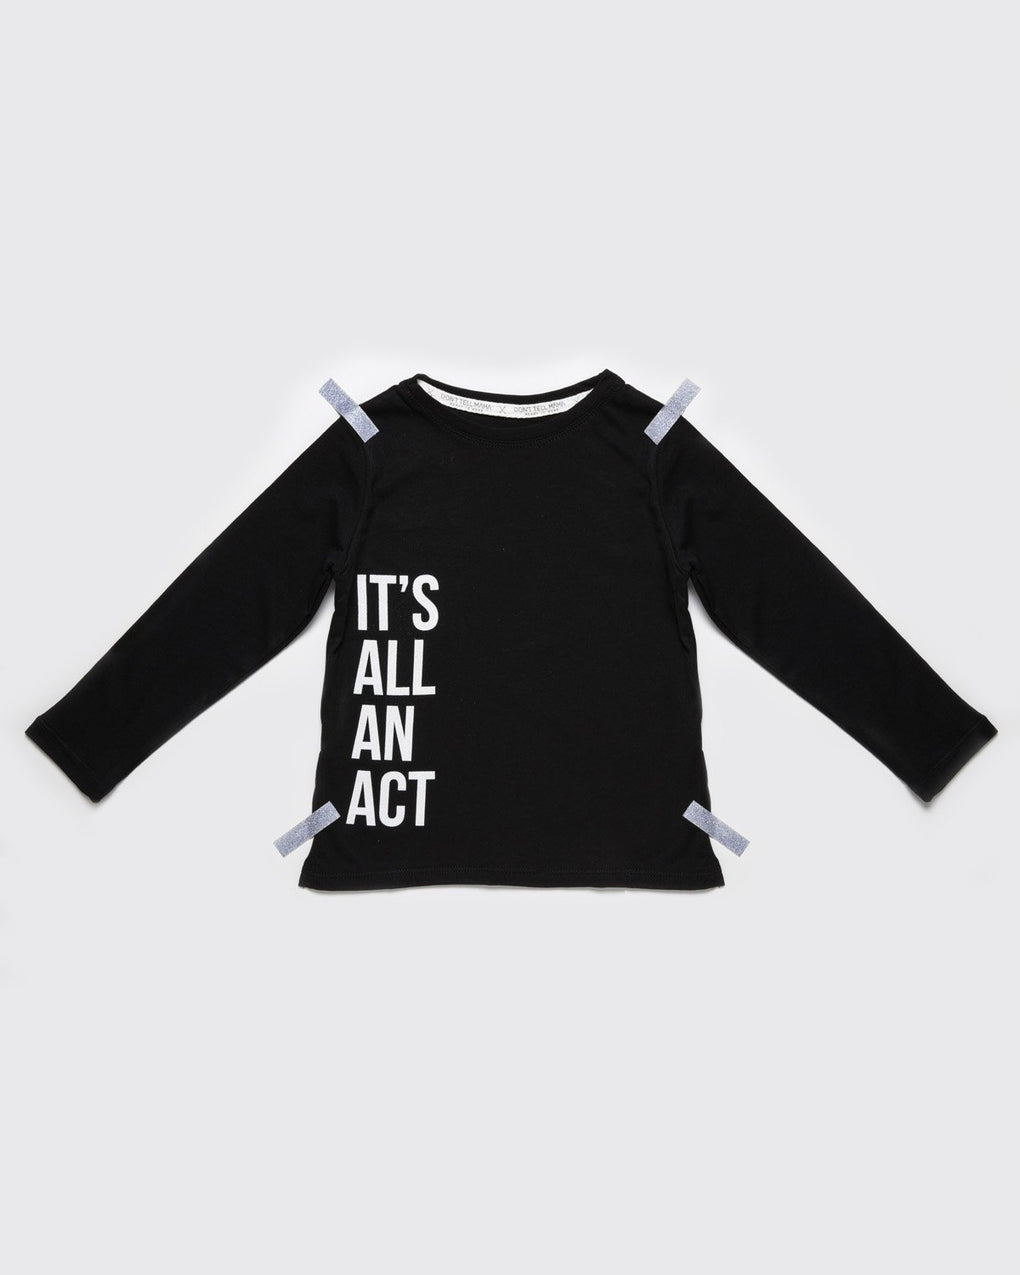 SHORTIES ALL AN ACT LONG SLEEVES // DON'T TELL MAMA